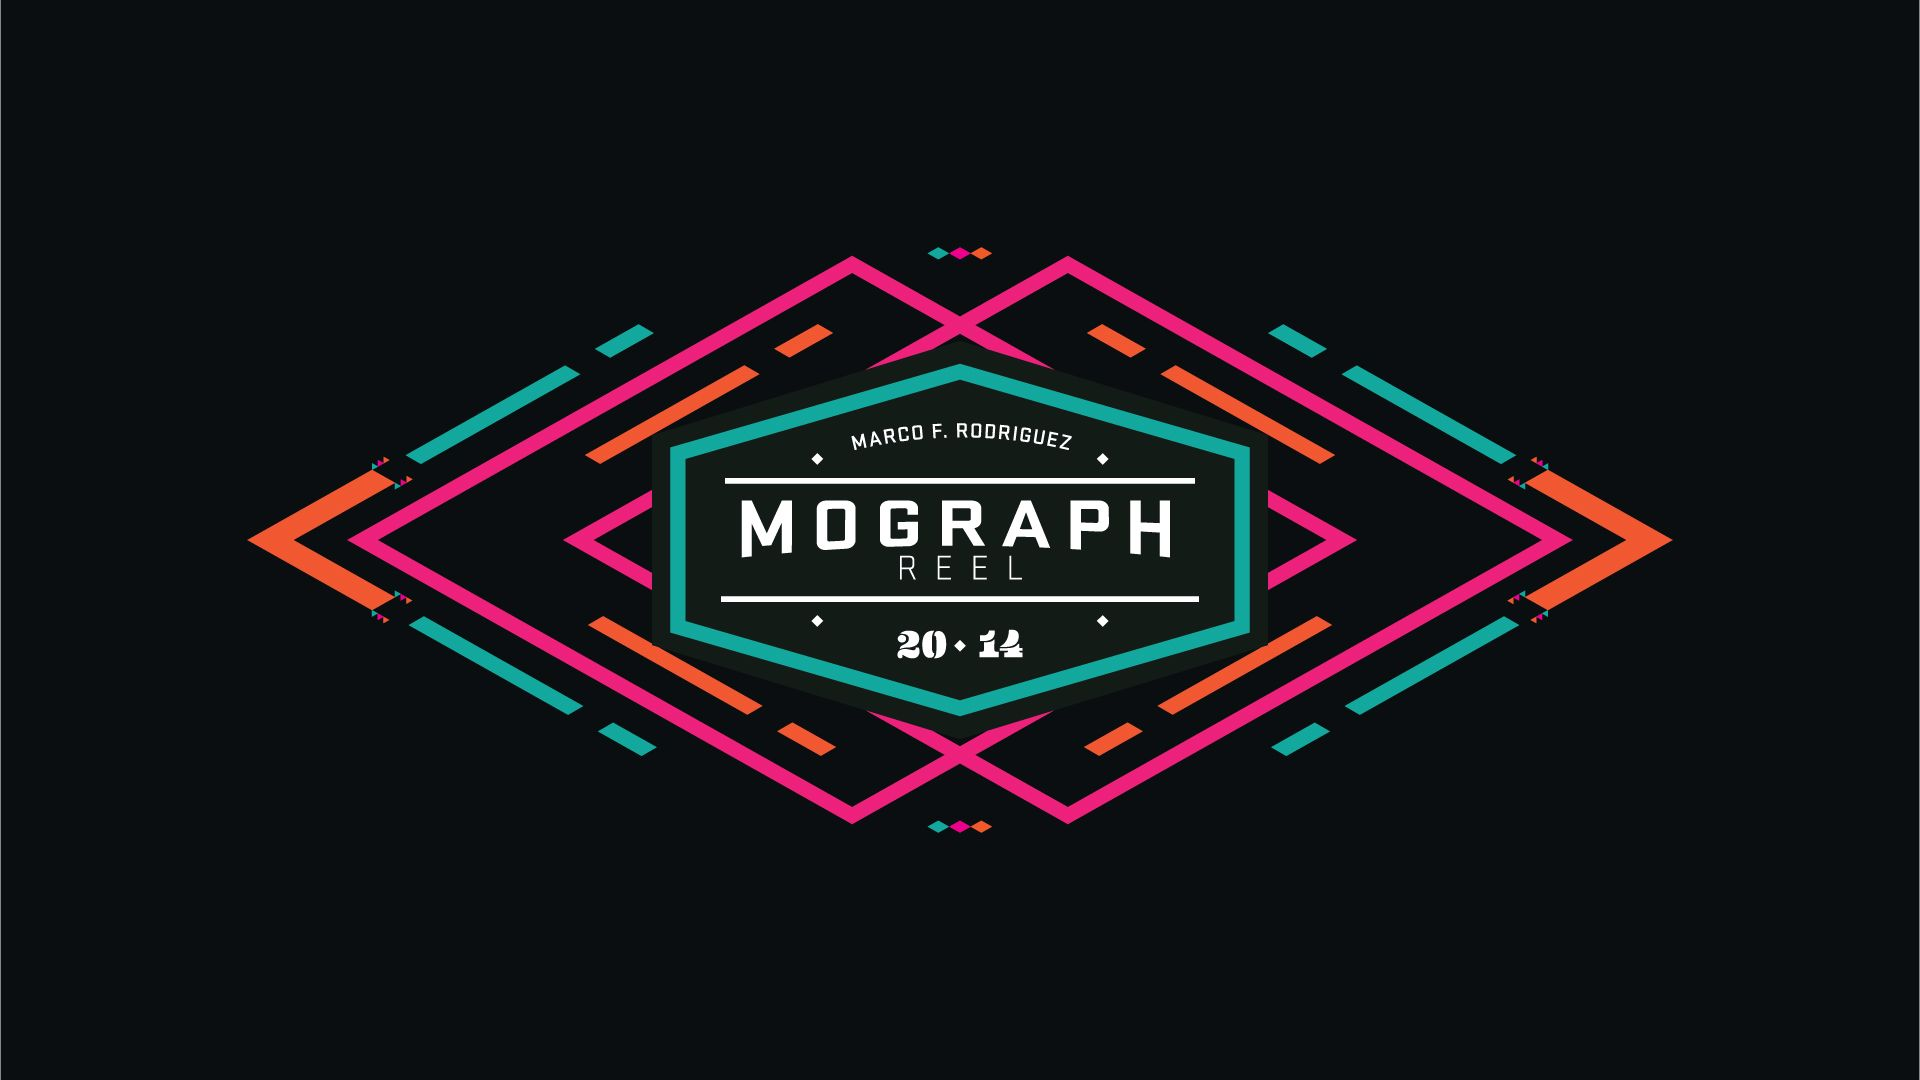 intro for 2014 mograph reel by Marco F. Rodriguez